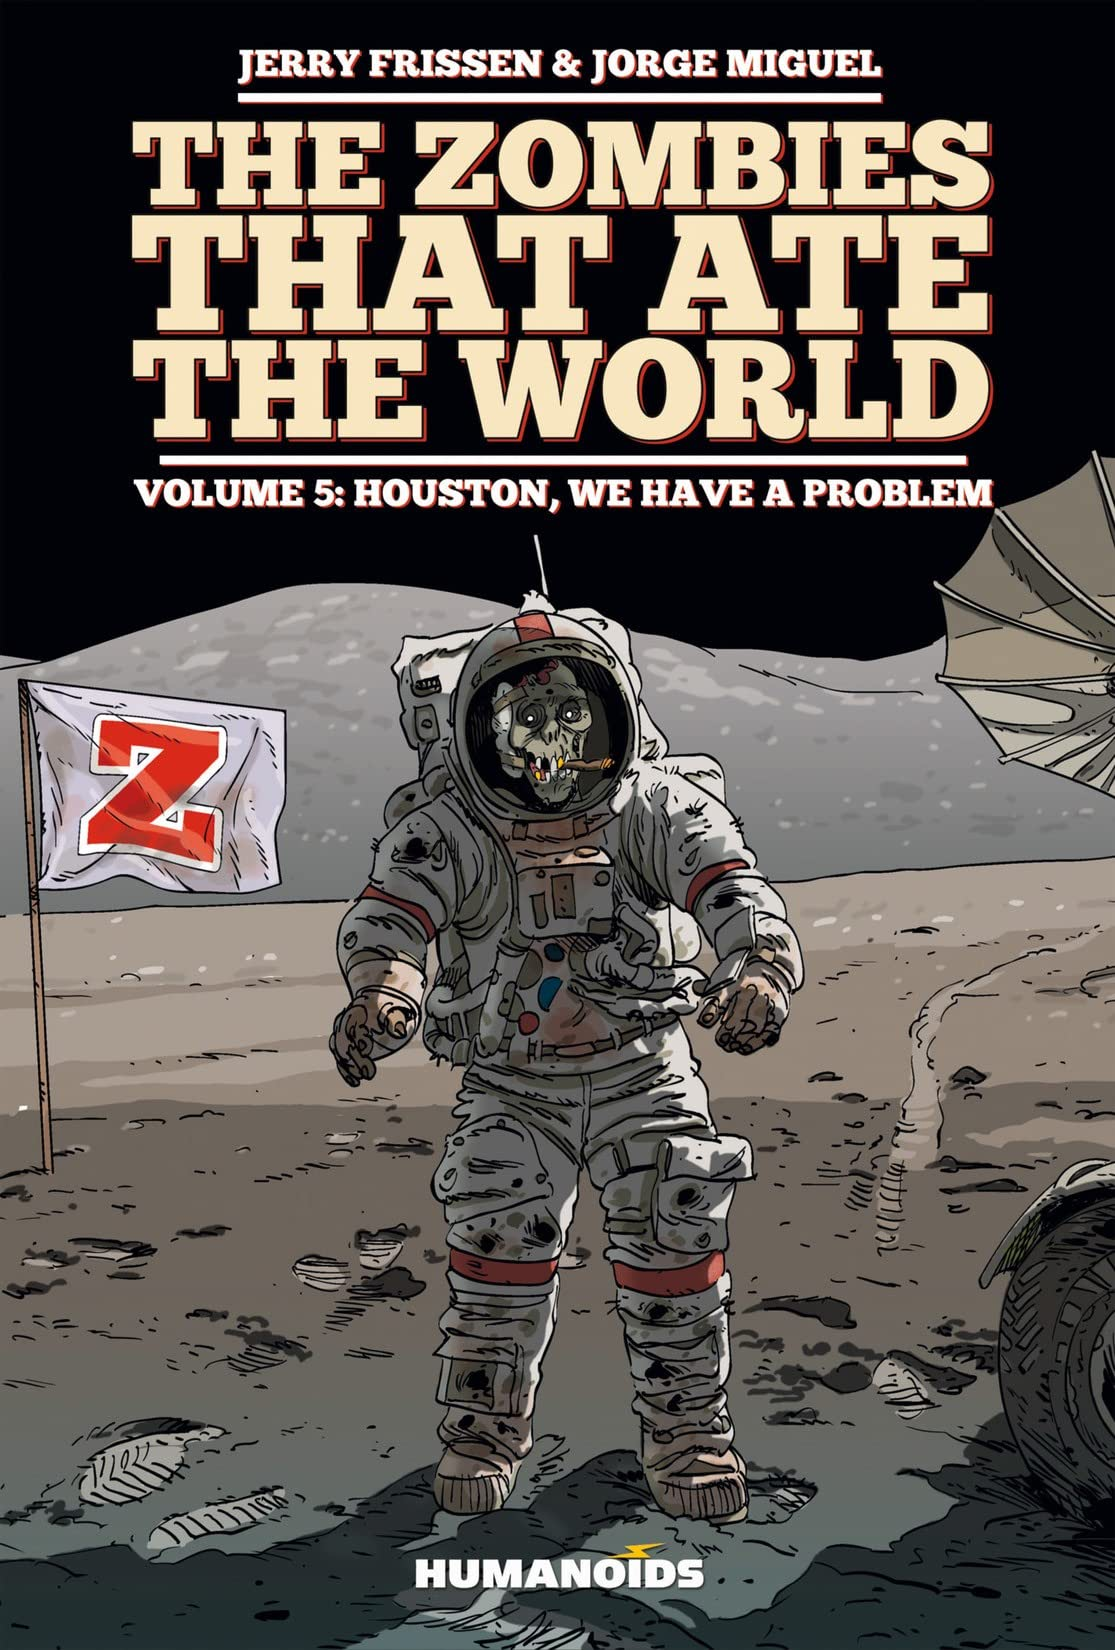 The Zombies that Ate the World Vol. 5: Houston, we have a problem